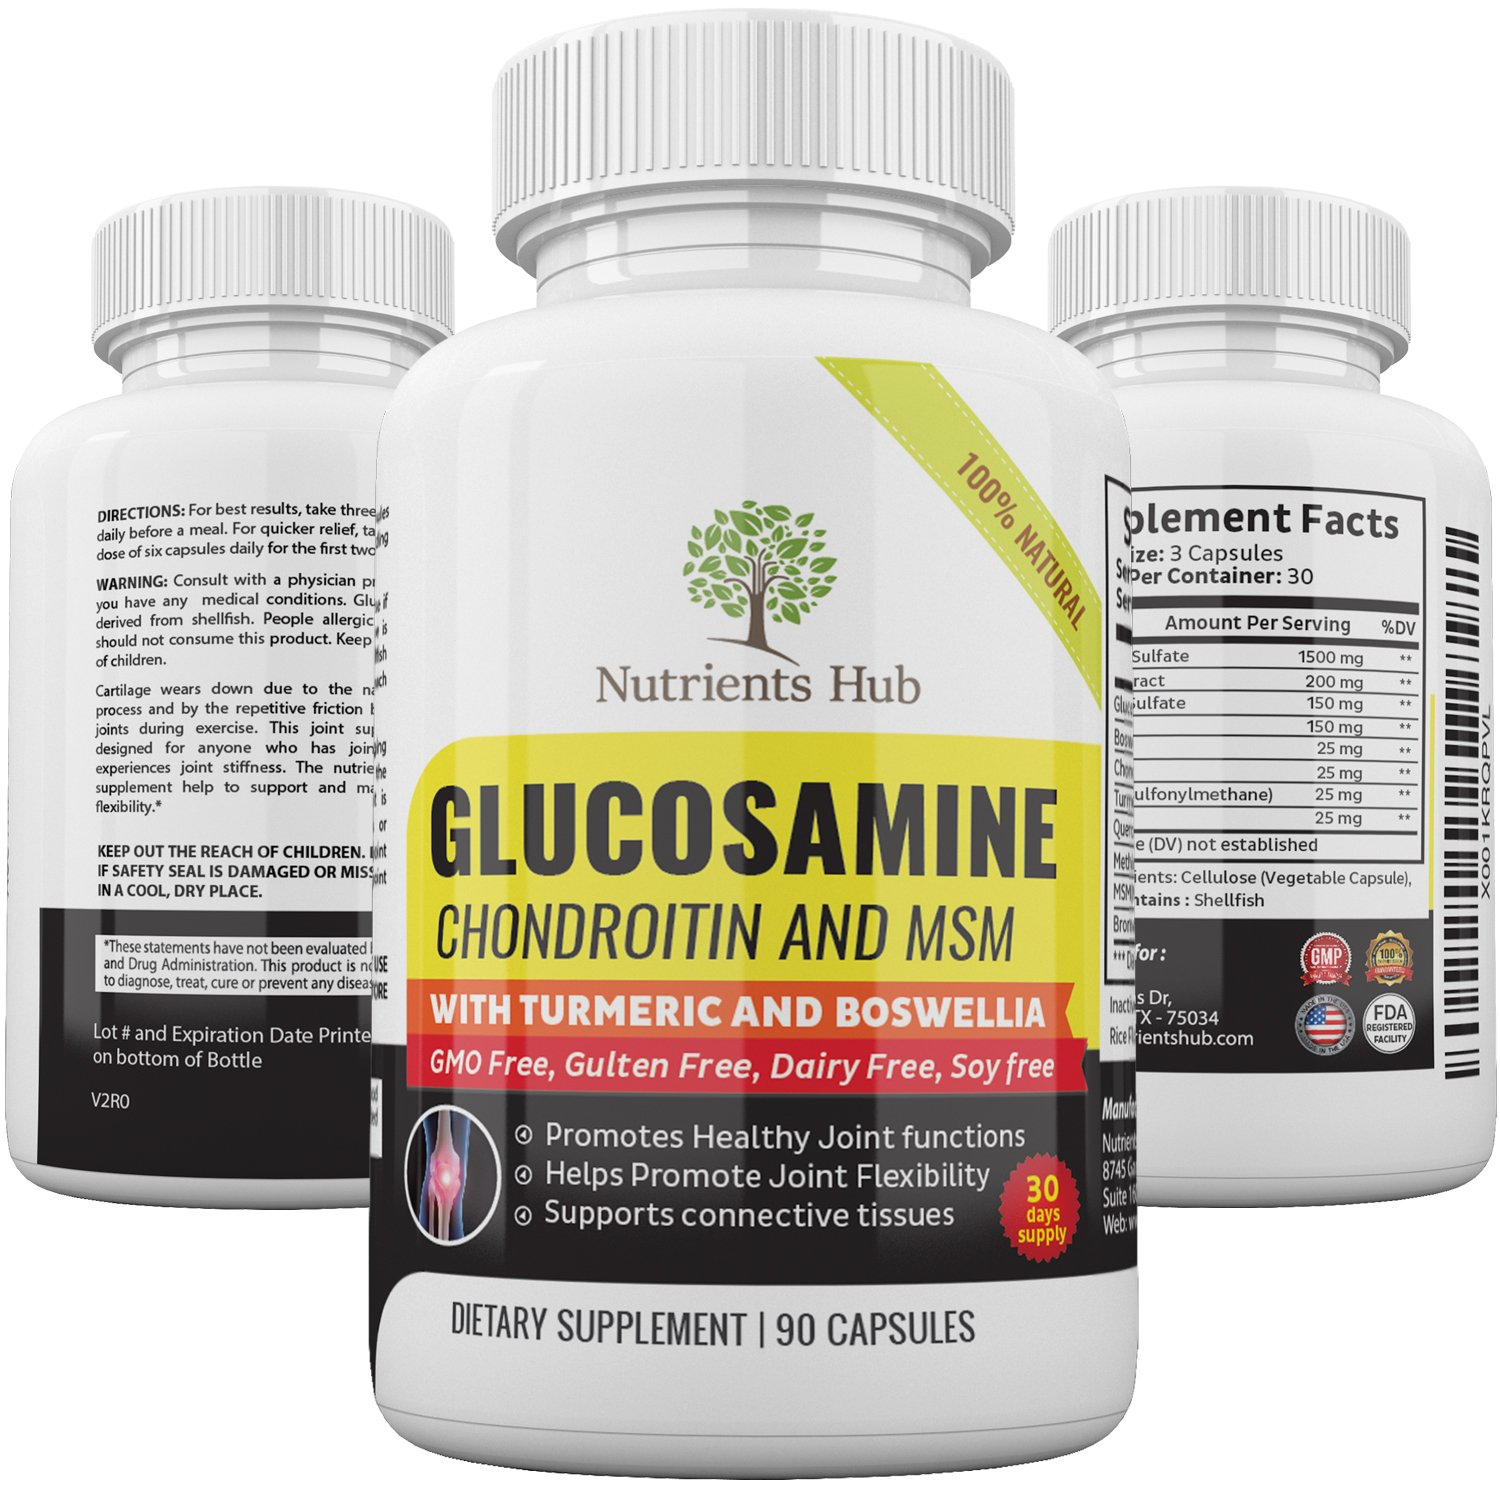 Glucosamine Chondroitin Turmeric MSM Boswellia - Joint Pain Relief Supplement - Best Anti-Inflammatory & Antioxidant Pills for Your Back, Knees, Hands & More - GMO & Gluten Free by Nutrients Hub